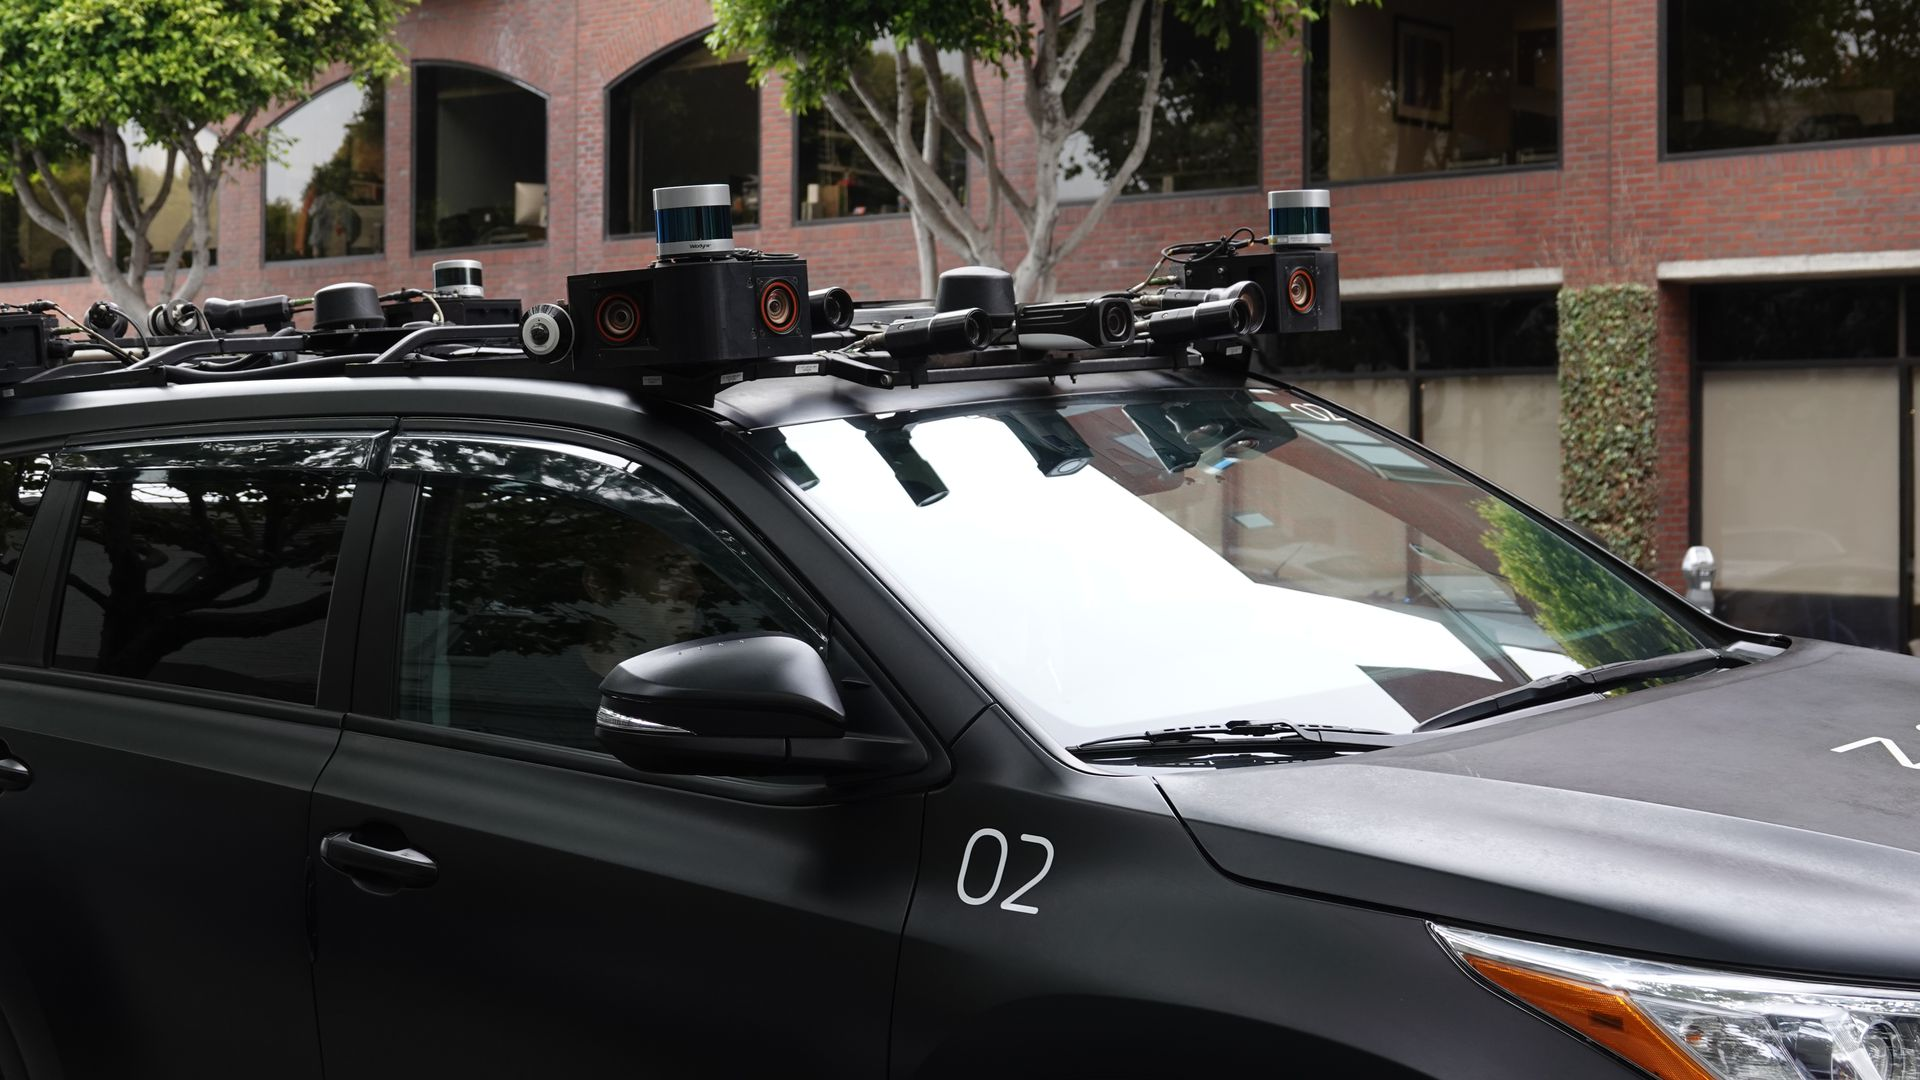 Zoox raises $200 million to build self-driving car